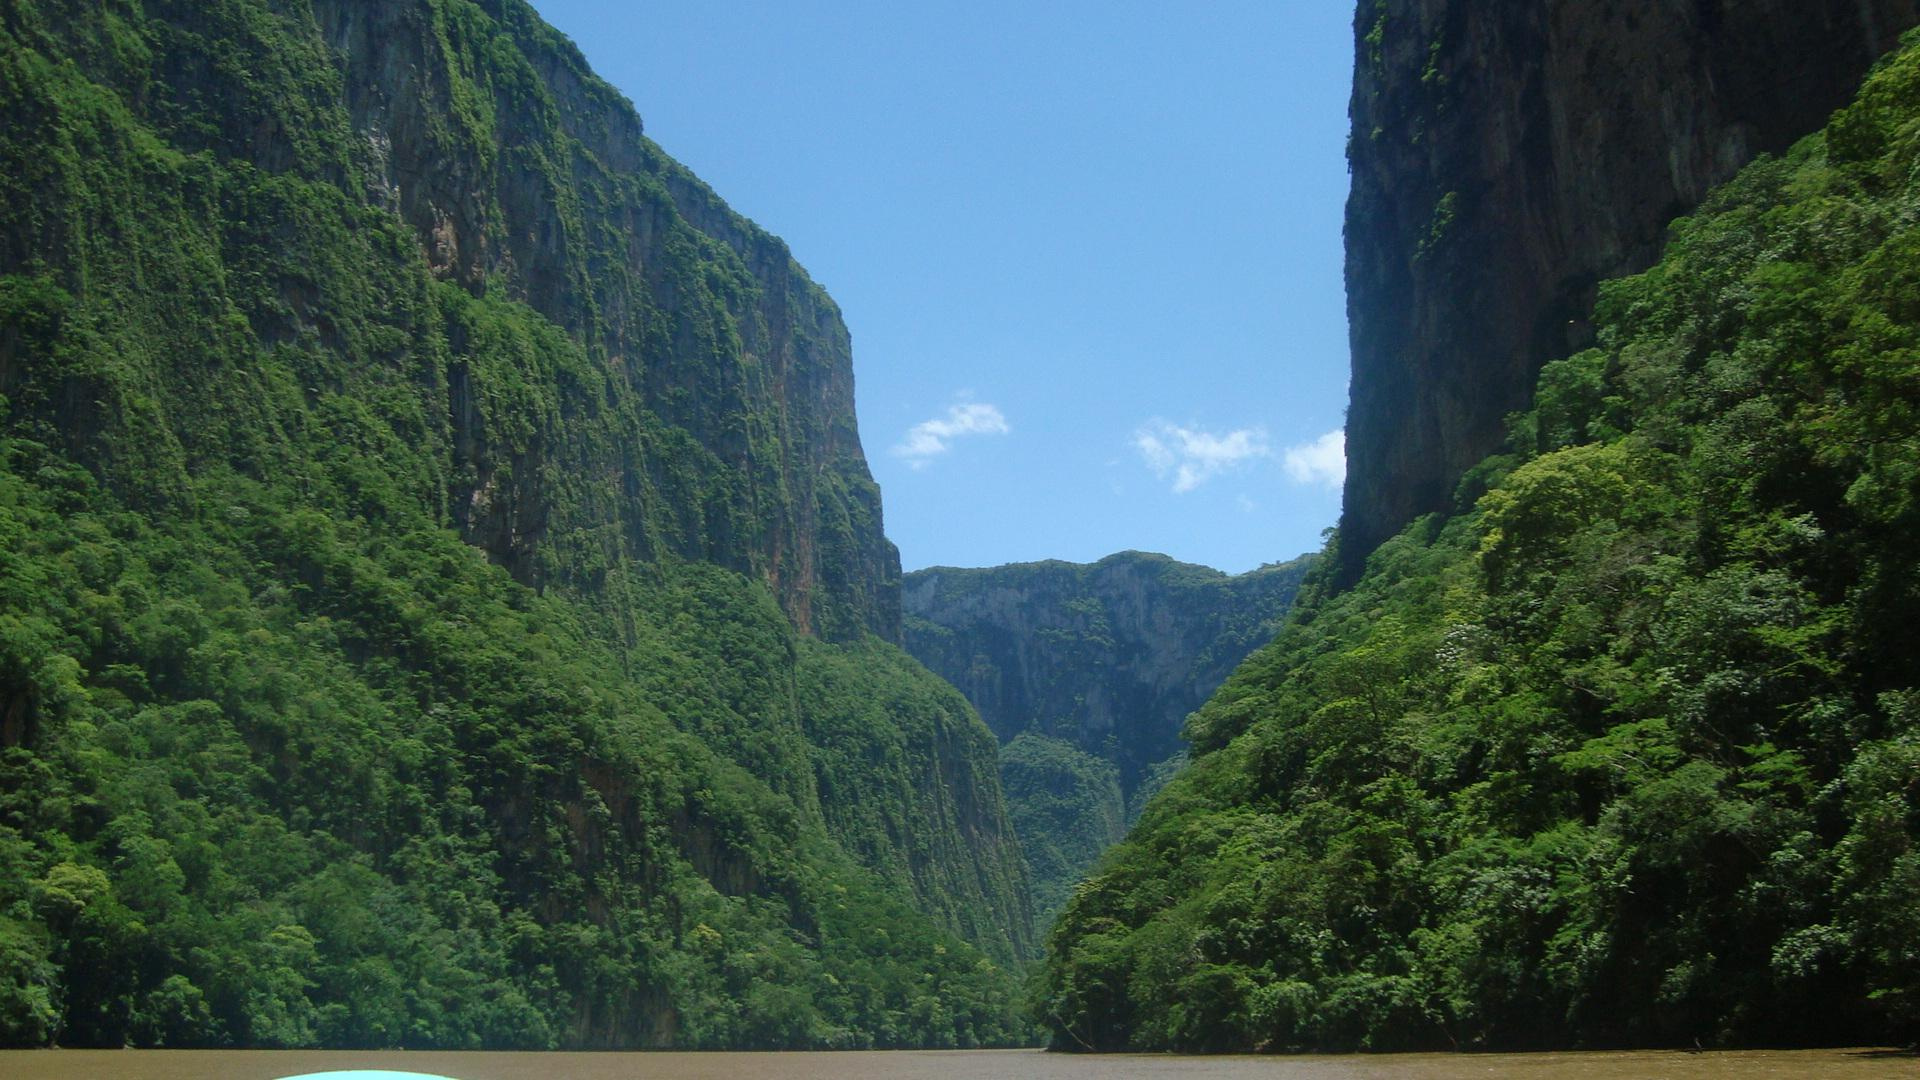 File:Morning at Sumidero Canyon.JPG